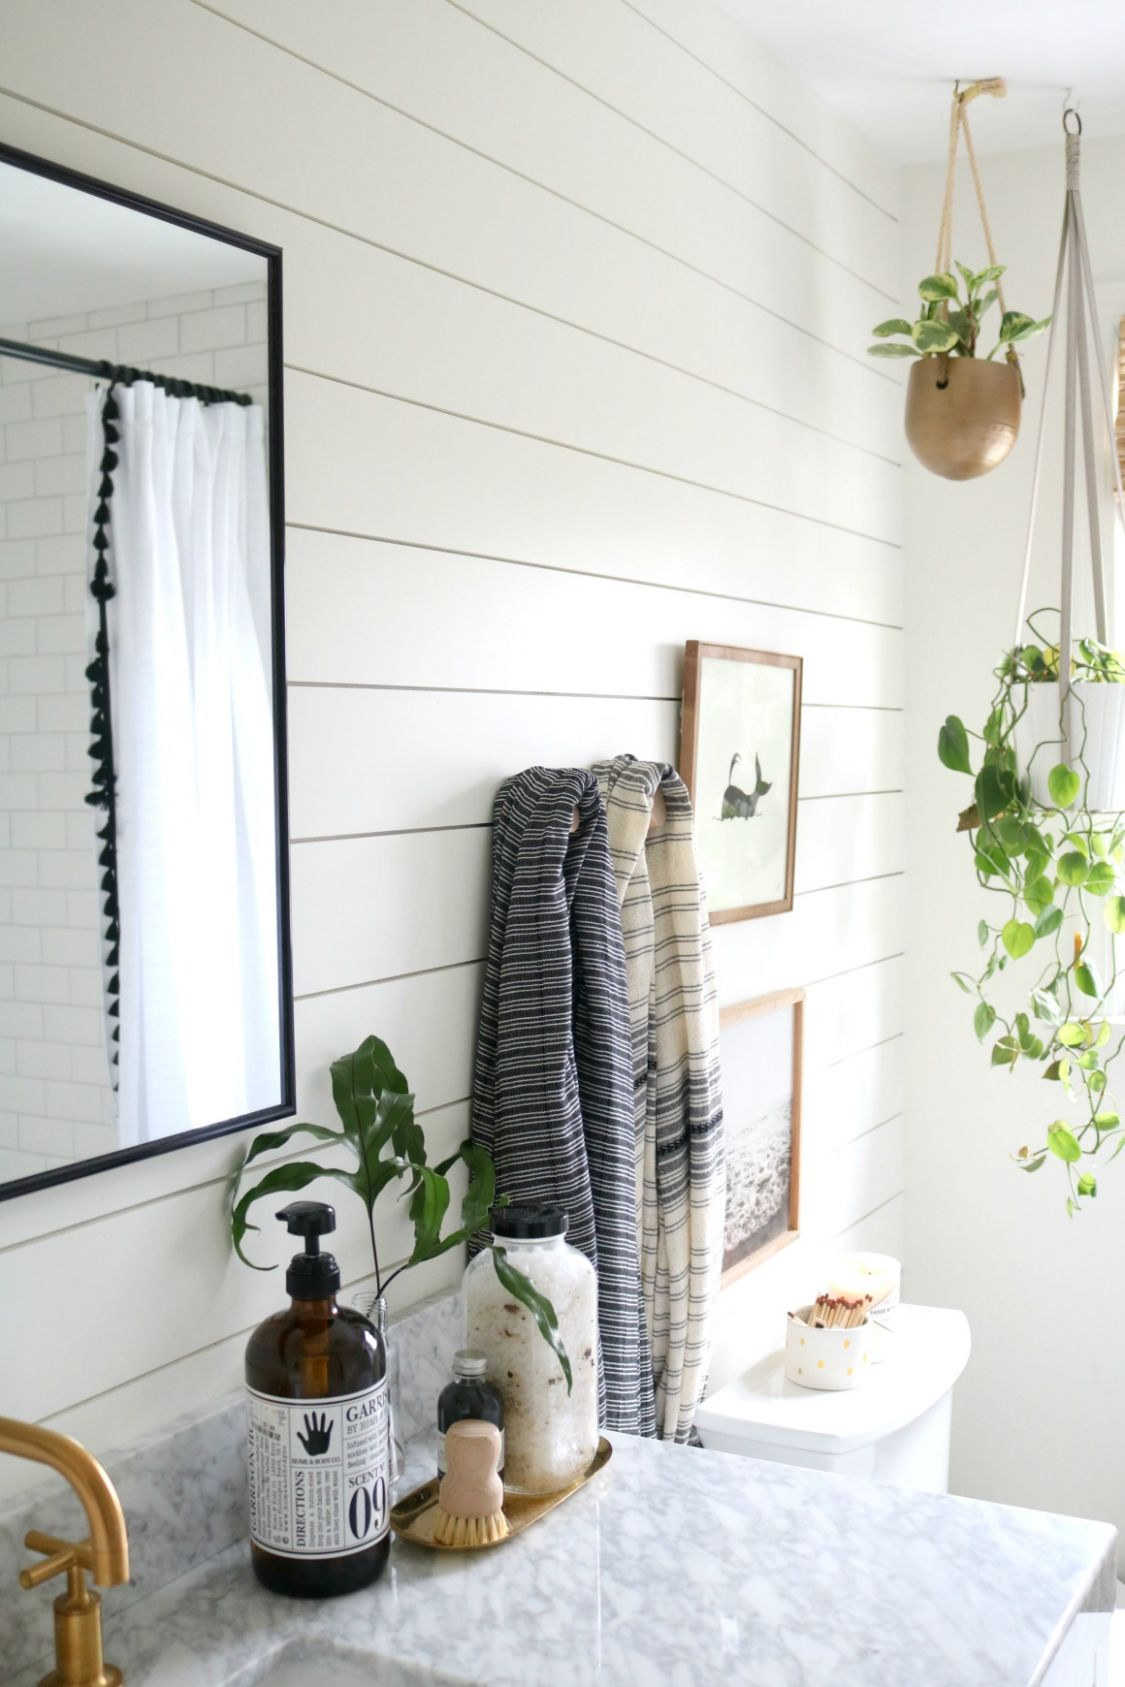 AZEK- The BEST Shiplap for Bathrooms - Nesting With Grace